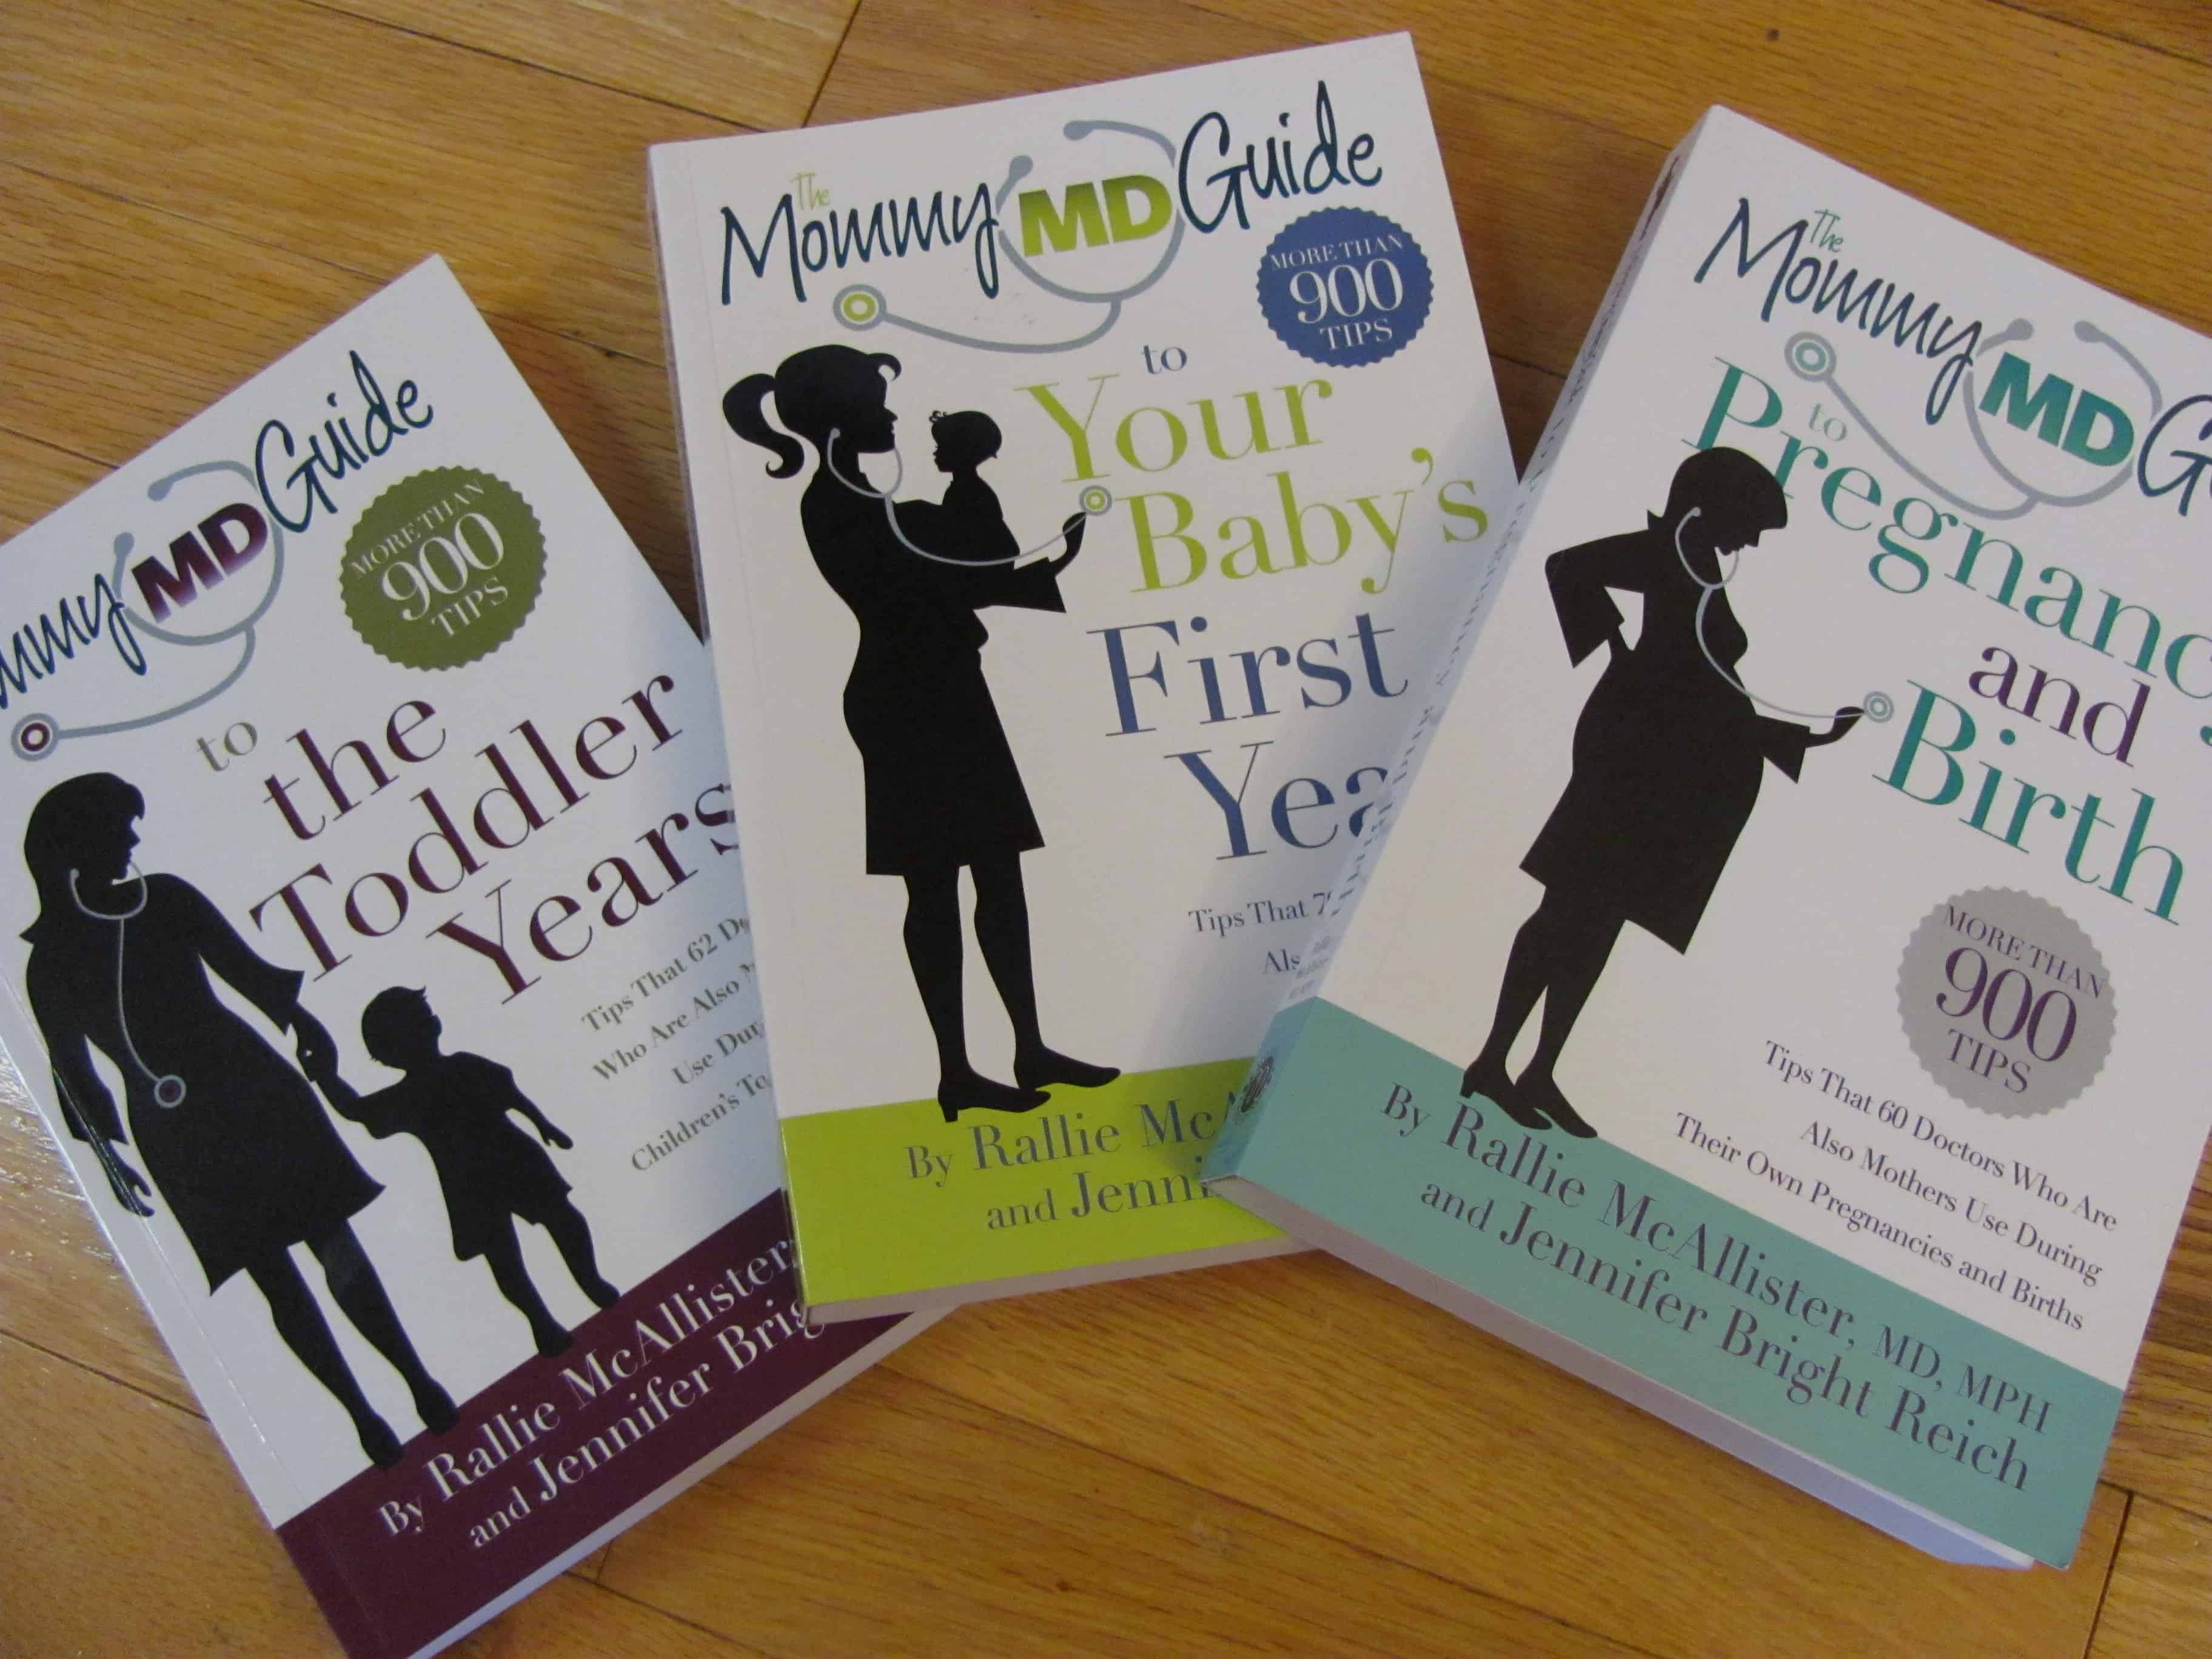 Get Tips and Advice from The Mommy MD Guides #giveaway